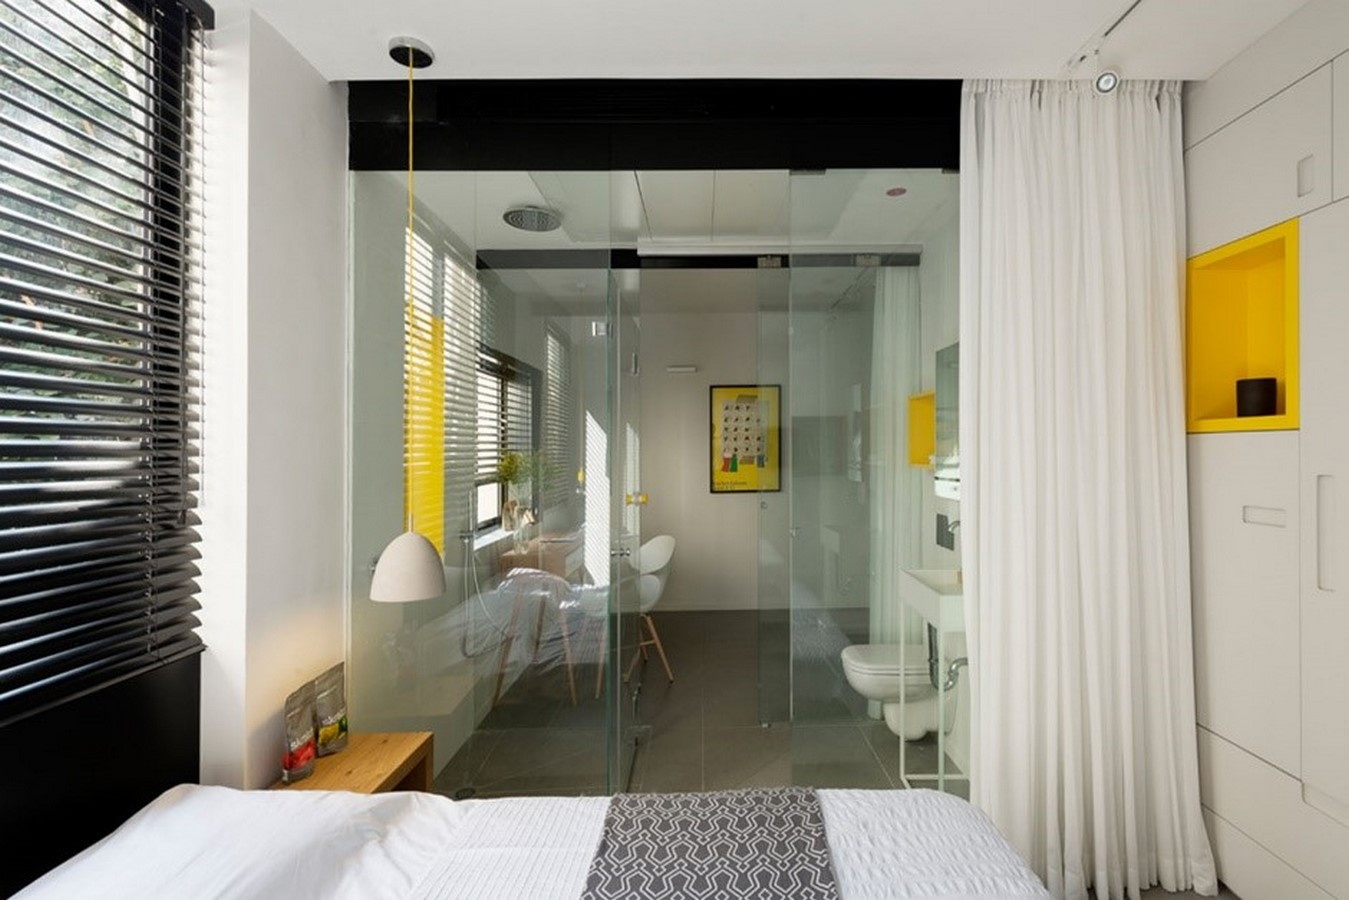 Can luxury fit into a 600sq.ft apartment - Sheet10